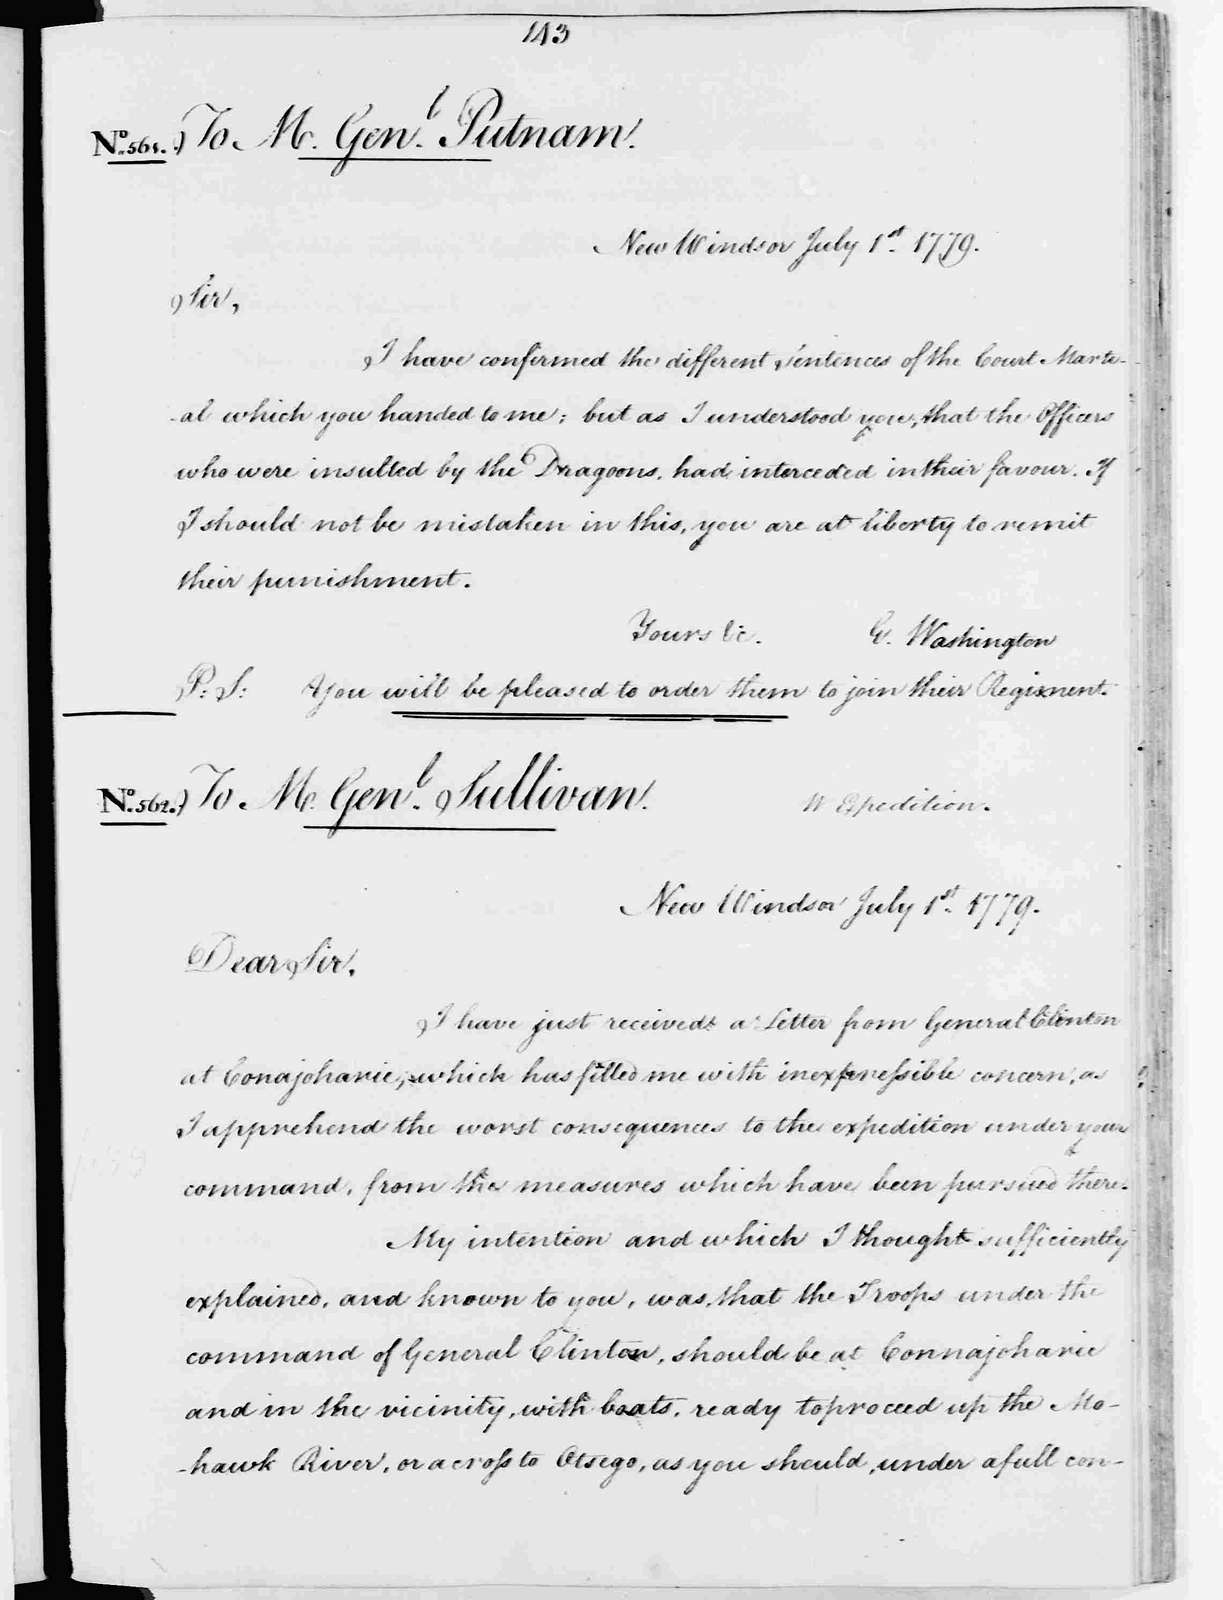 George Washington Papers, Series 3, Varick Transcripts, 1775-1785, Subseries 3B, Continental and State Military Personnel, 1775-1783, Letterbook 9: May 25, 1779 - Sept. 9, 1779